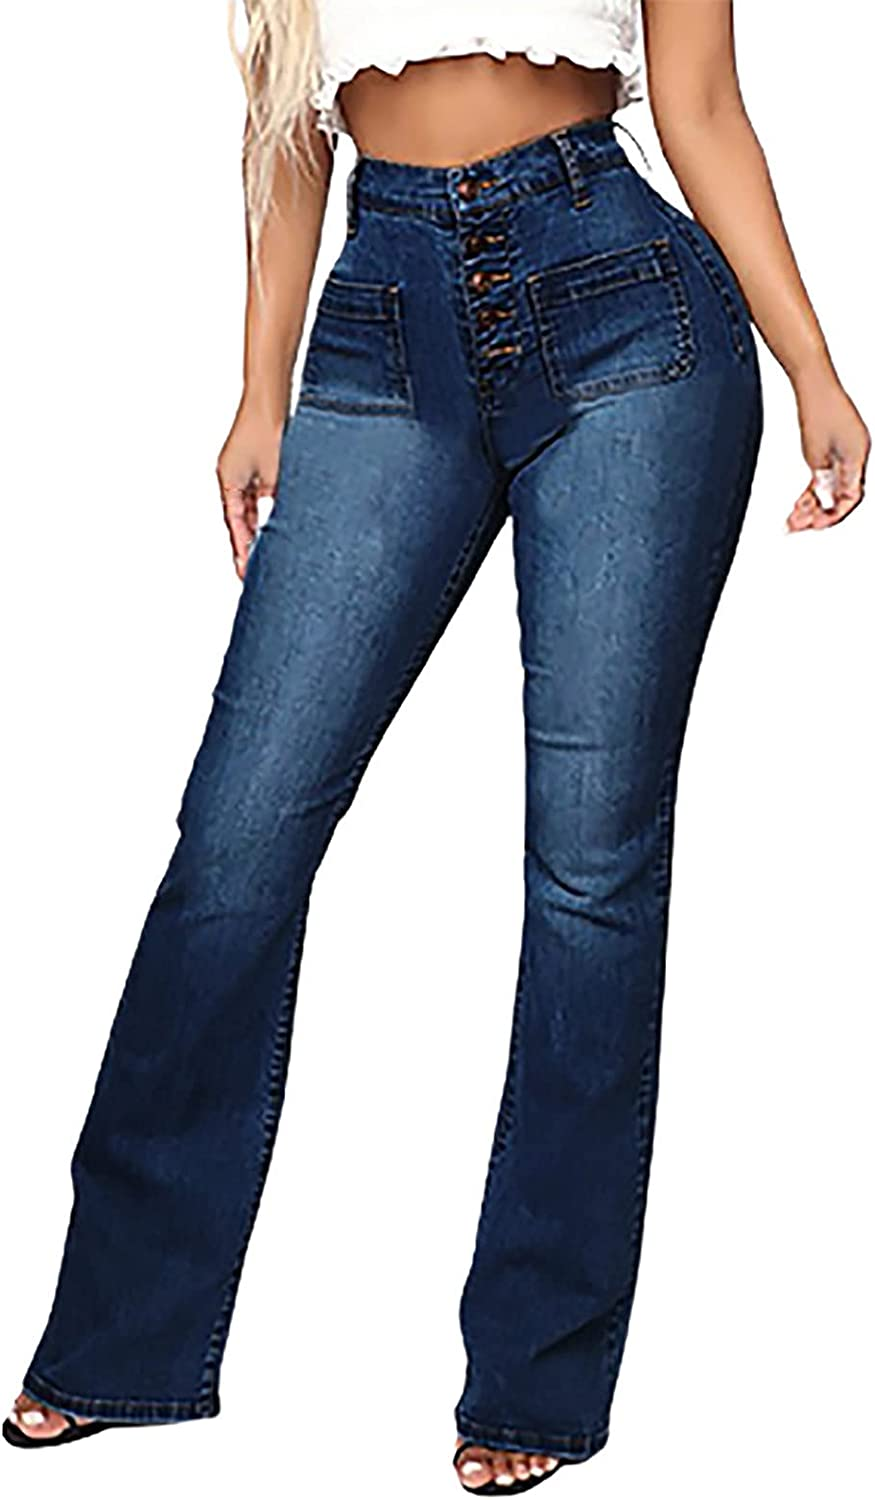 MIVAMIYA Women High Waist Button Jeans Bell Bottom Skinny Stretch Denim Jeans Bootcut Casual Mom Distressed Jeans Pants